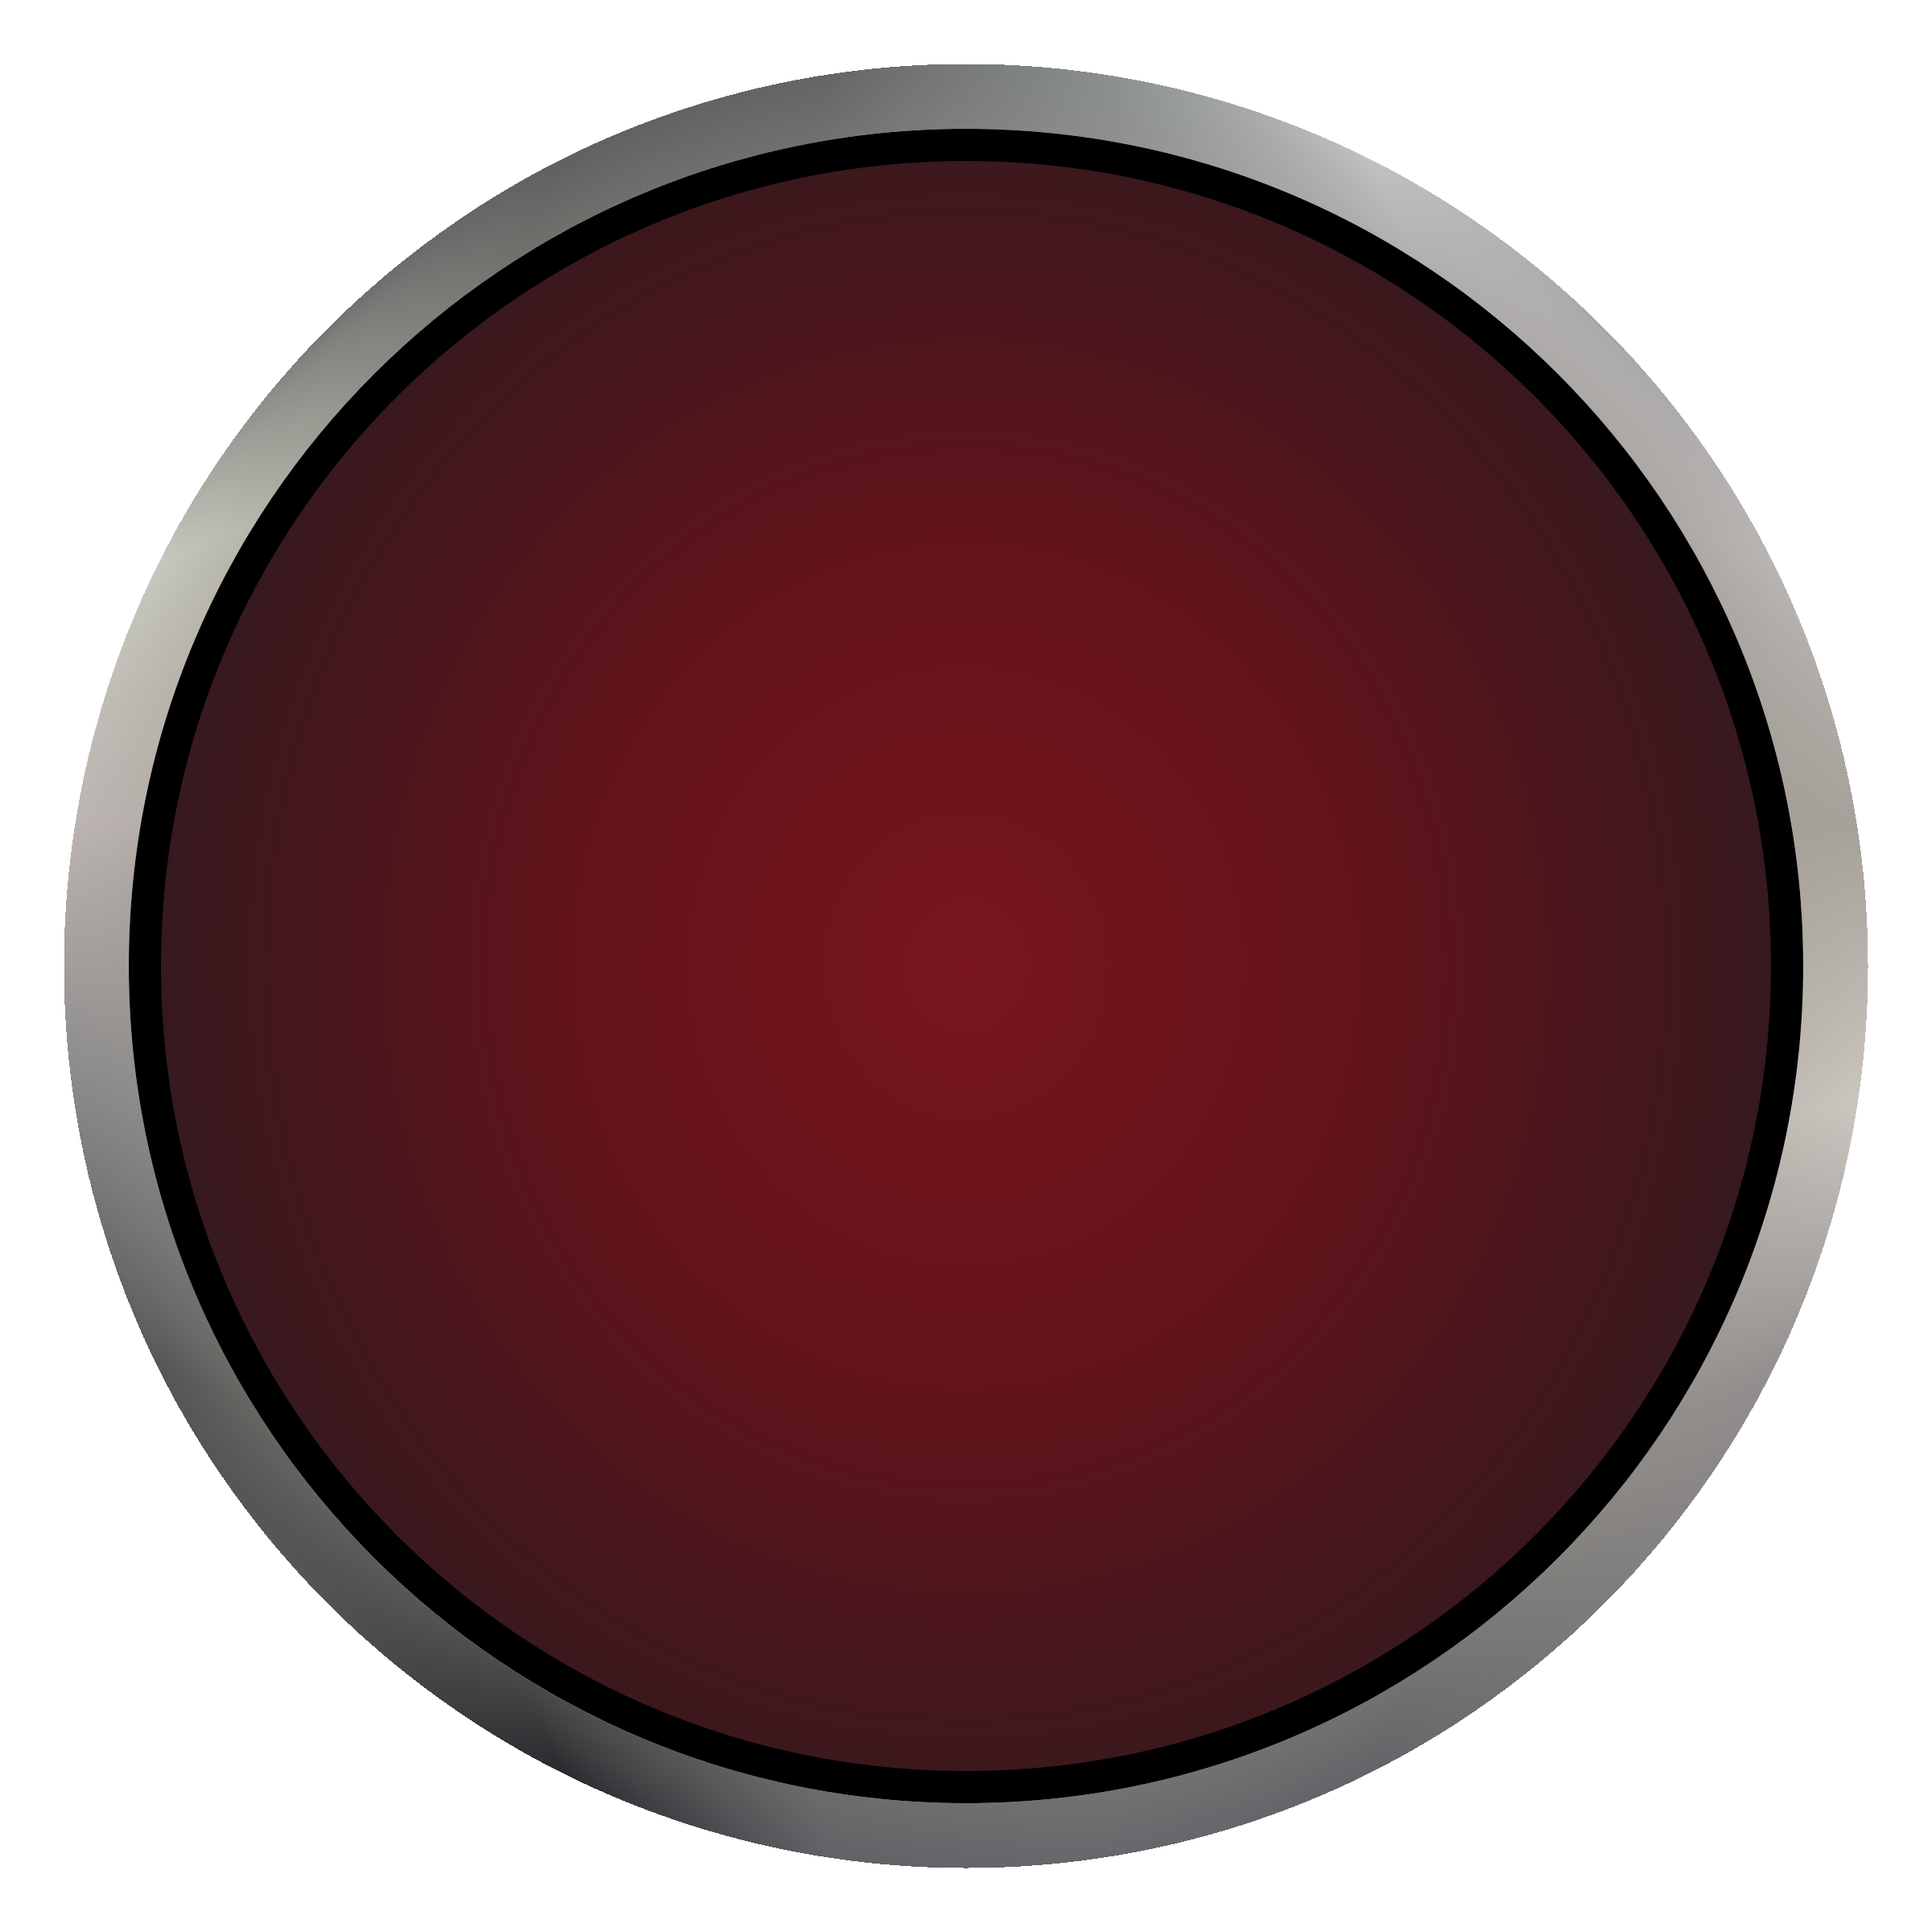 Button clipart push button. Industrial red big image